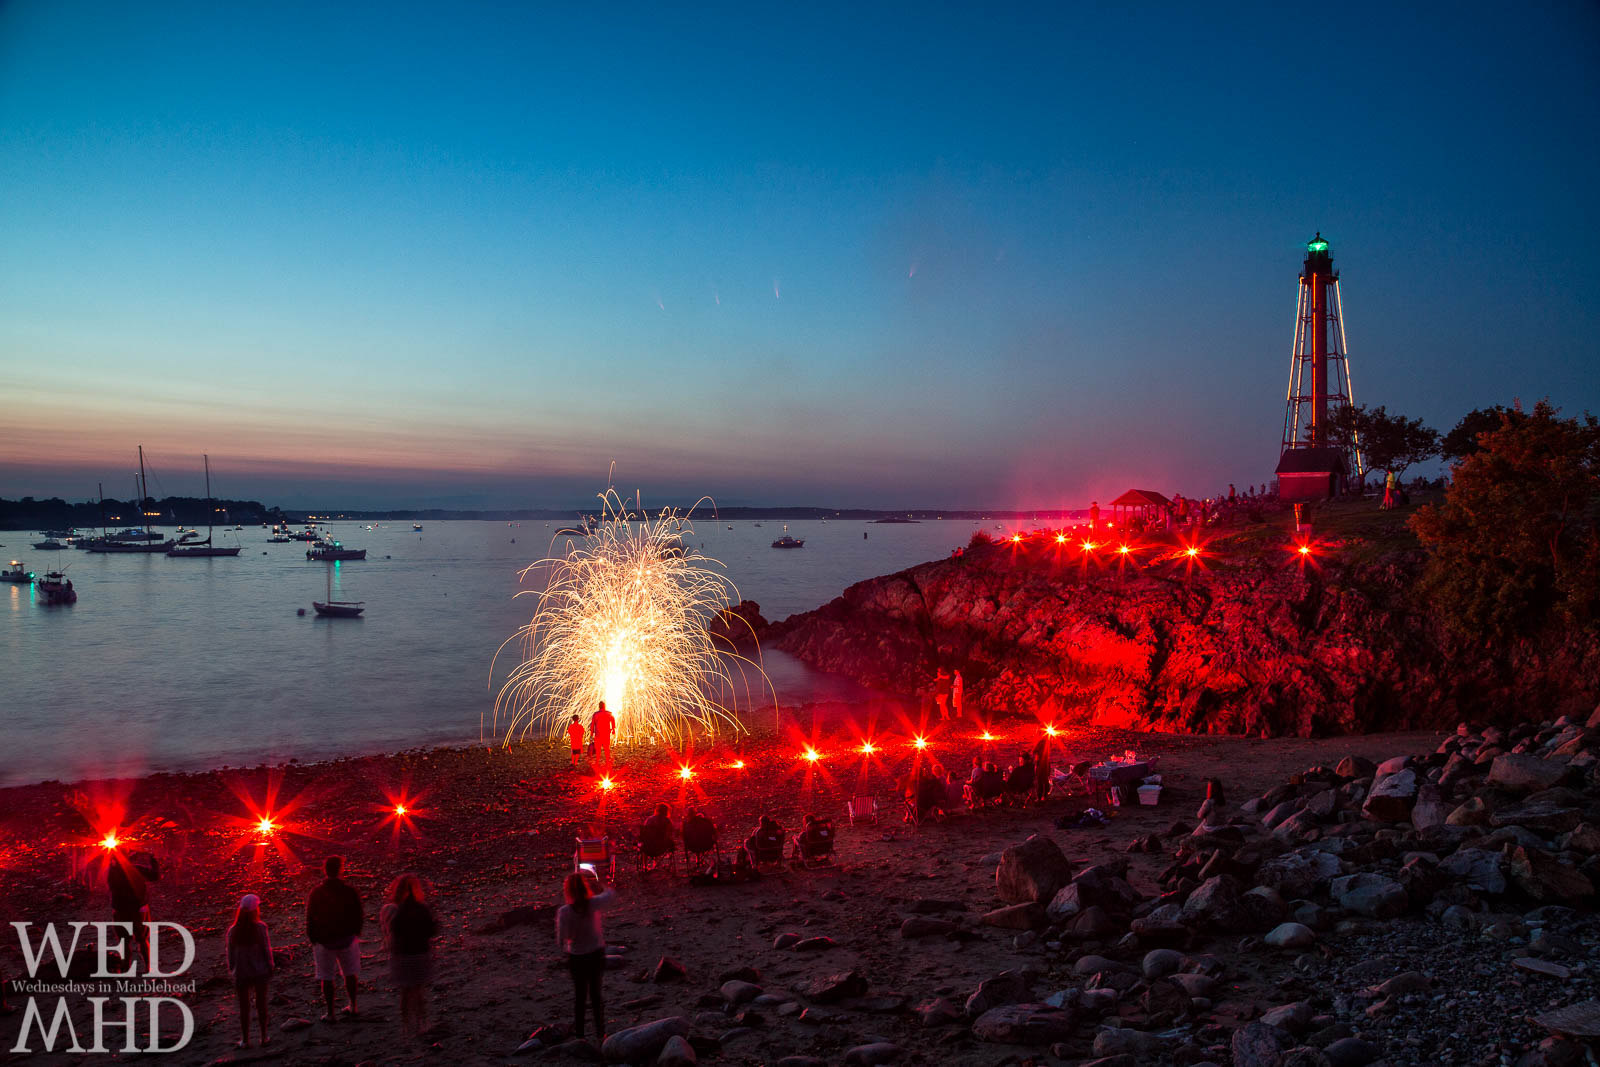 Marblehead's traditional harbor illumination takes place before the fireworks show on the Fourth of July